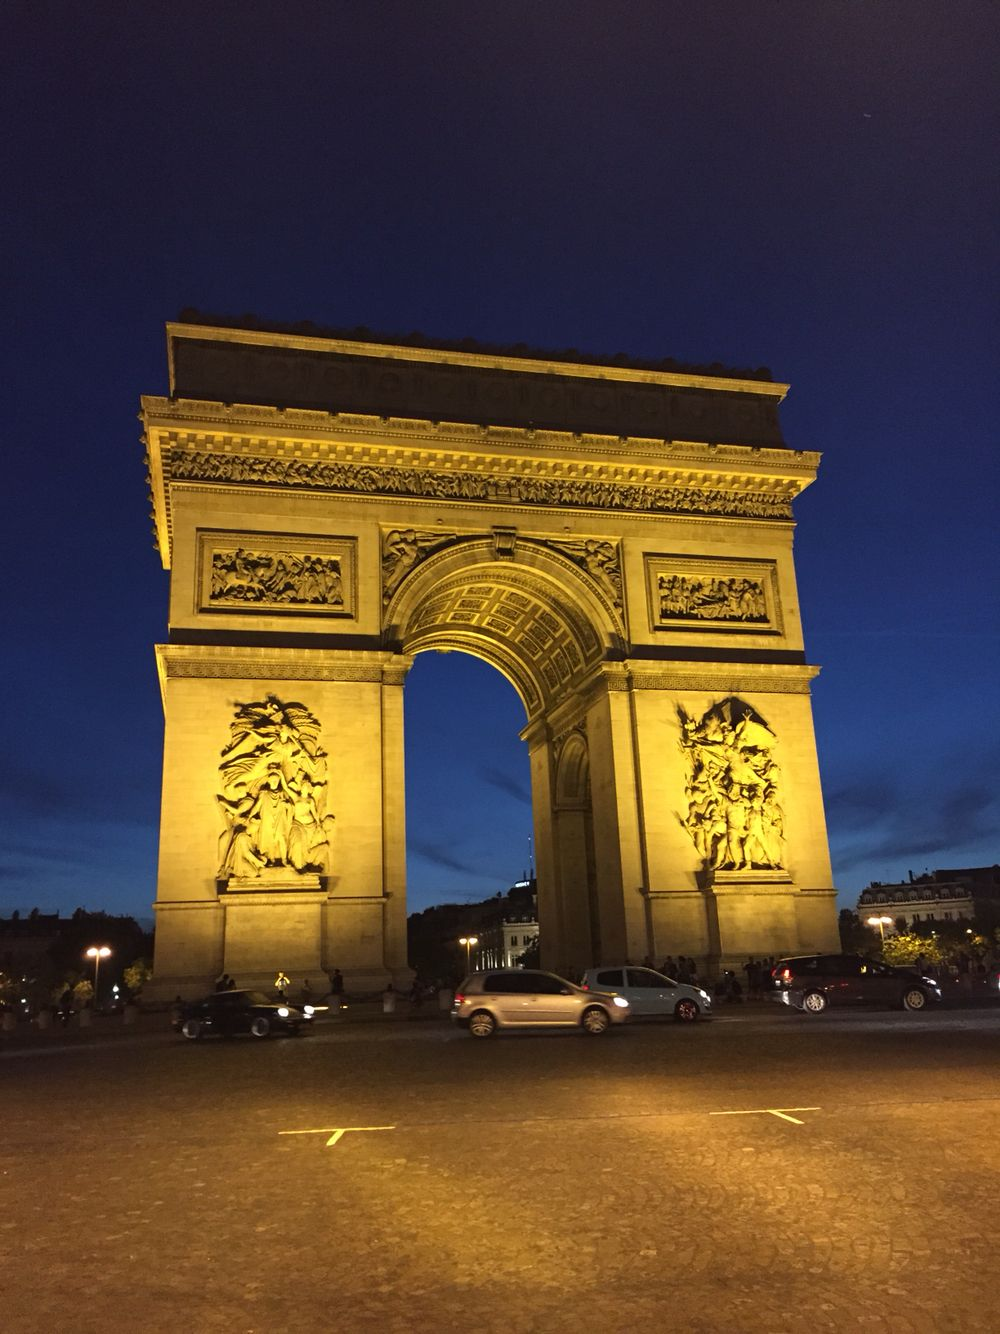 Incredible night view of the Arc de Triomphe on the Champs-Élysées.